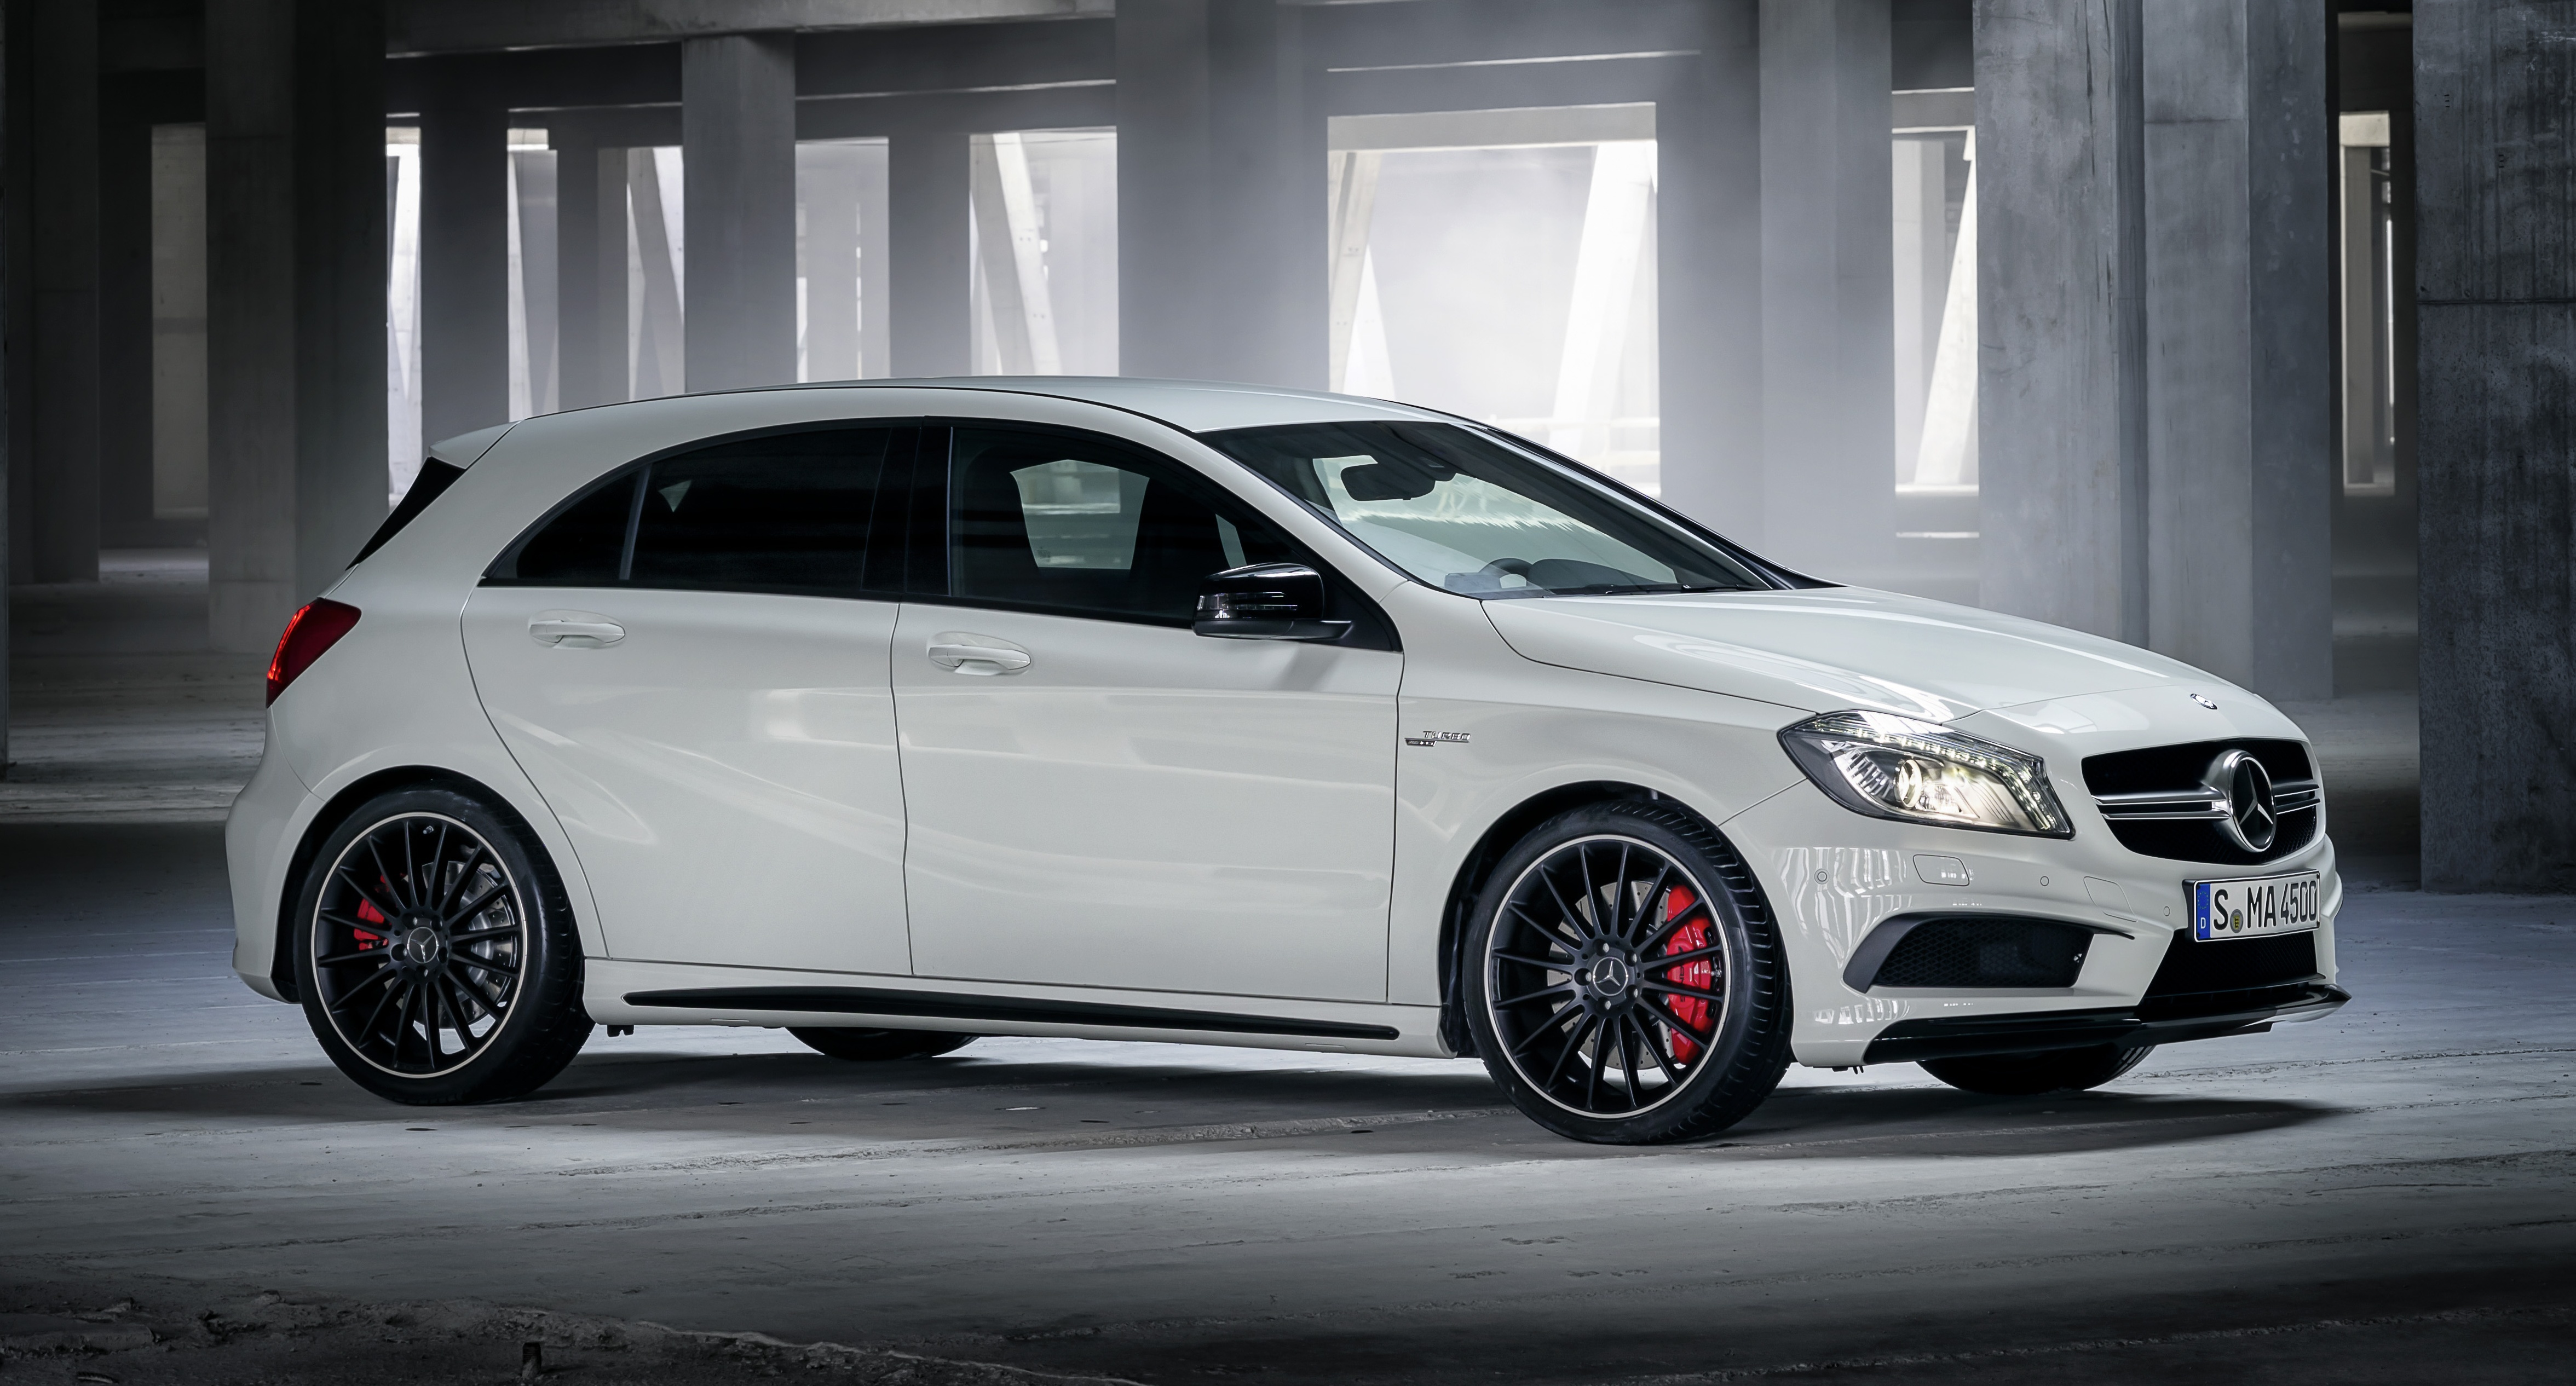 Mercedes benz a 45 amg 360hp 450nm range topper image 154453 for Mercedes benz amg range